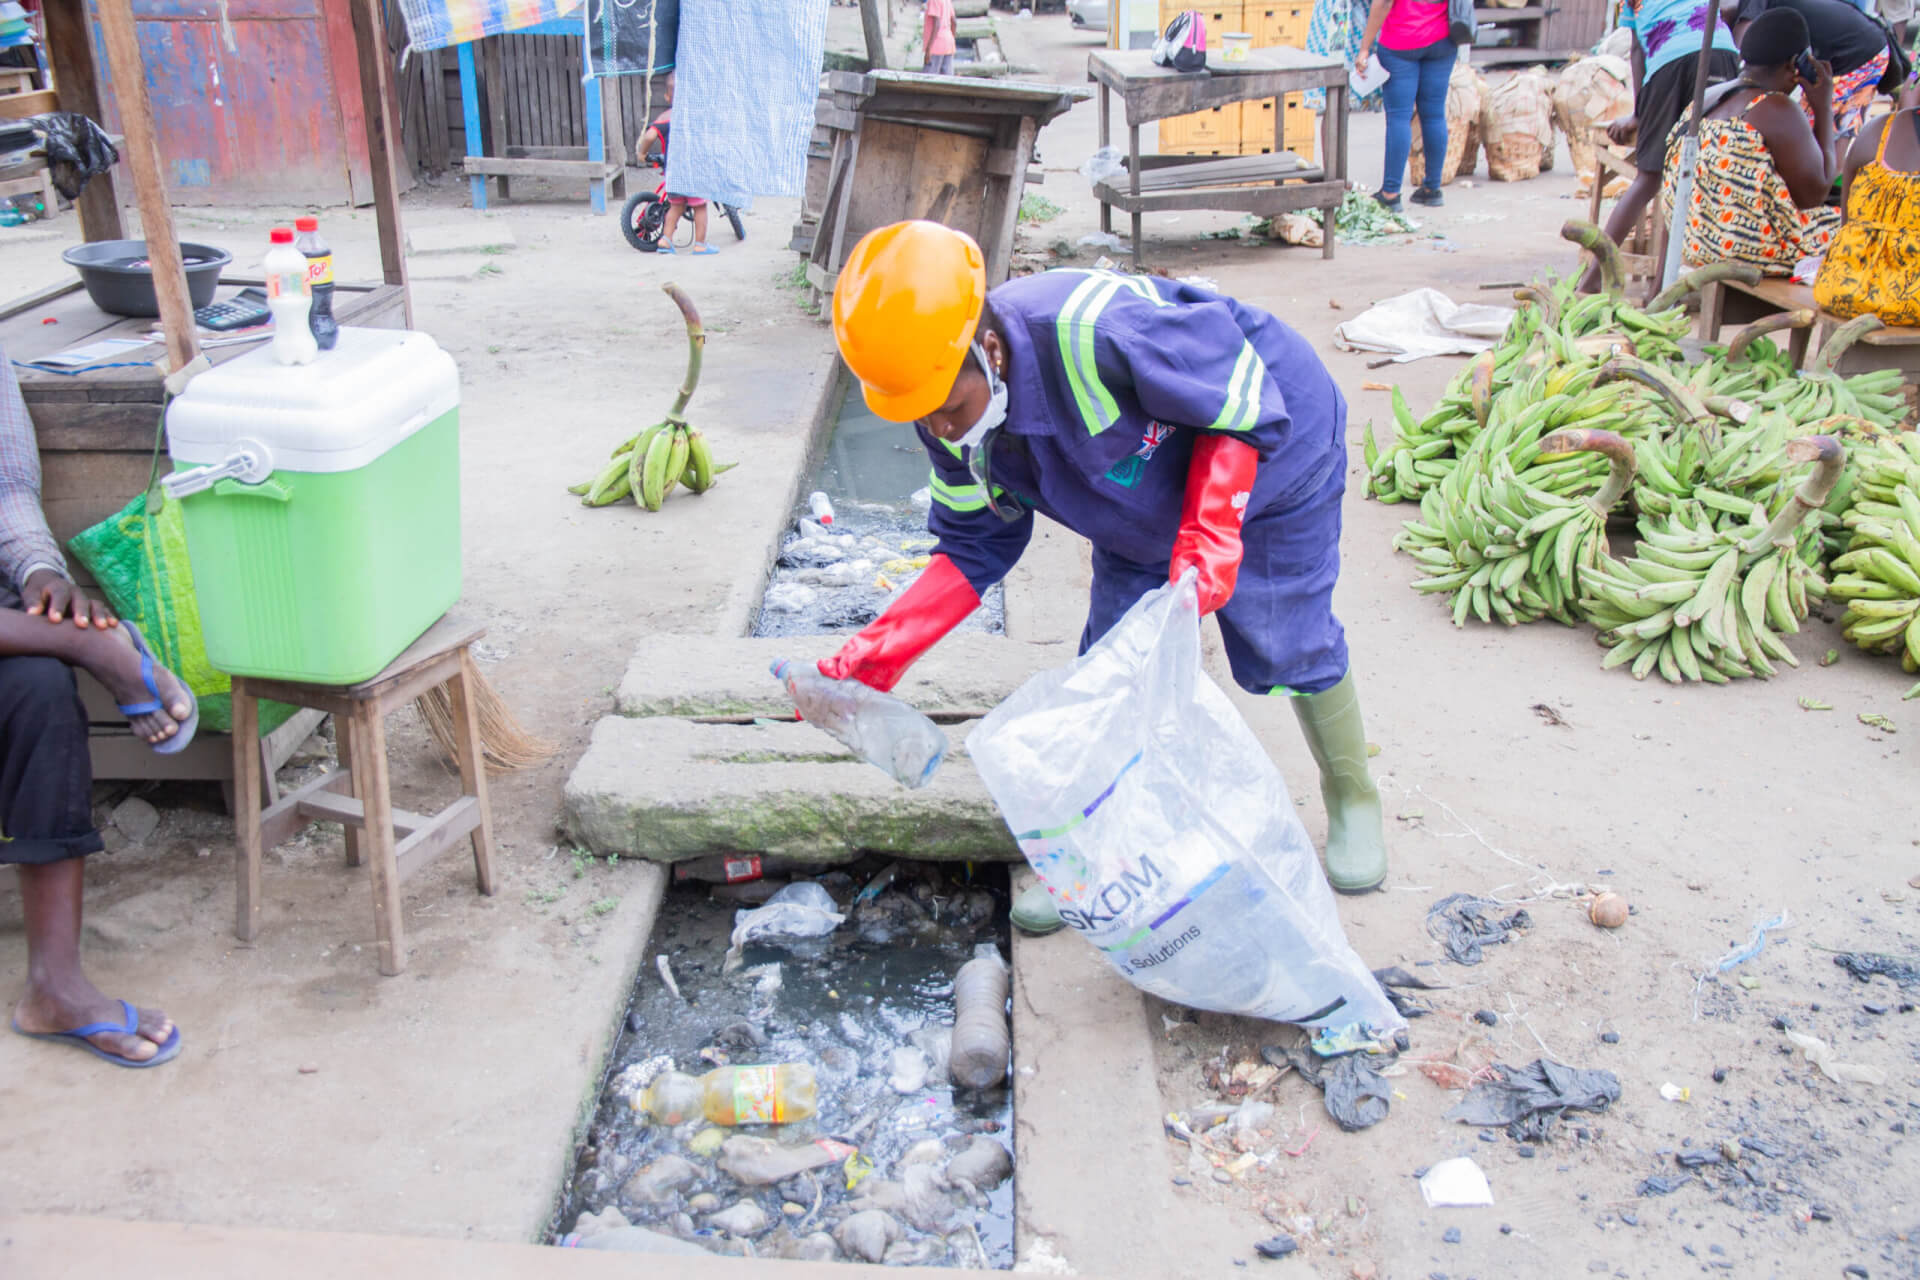 Blocked drains attract mosquitoes and flies that spread disease